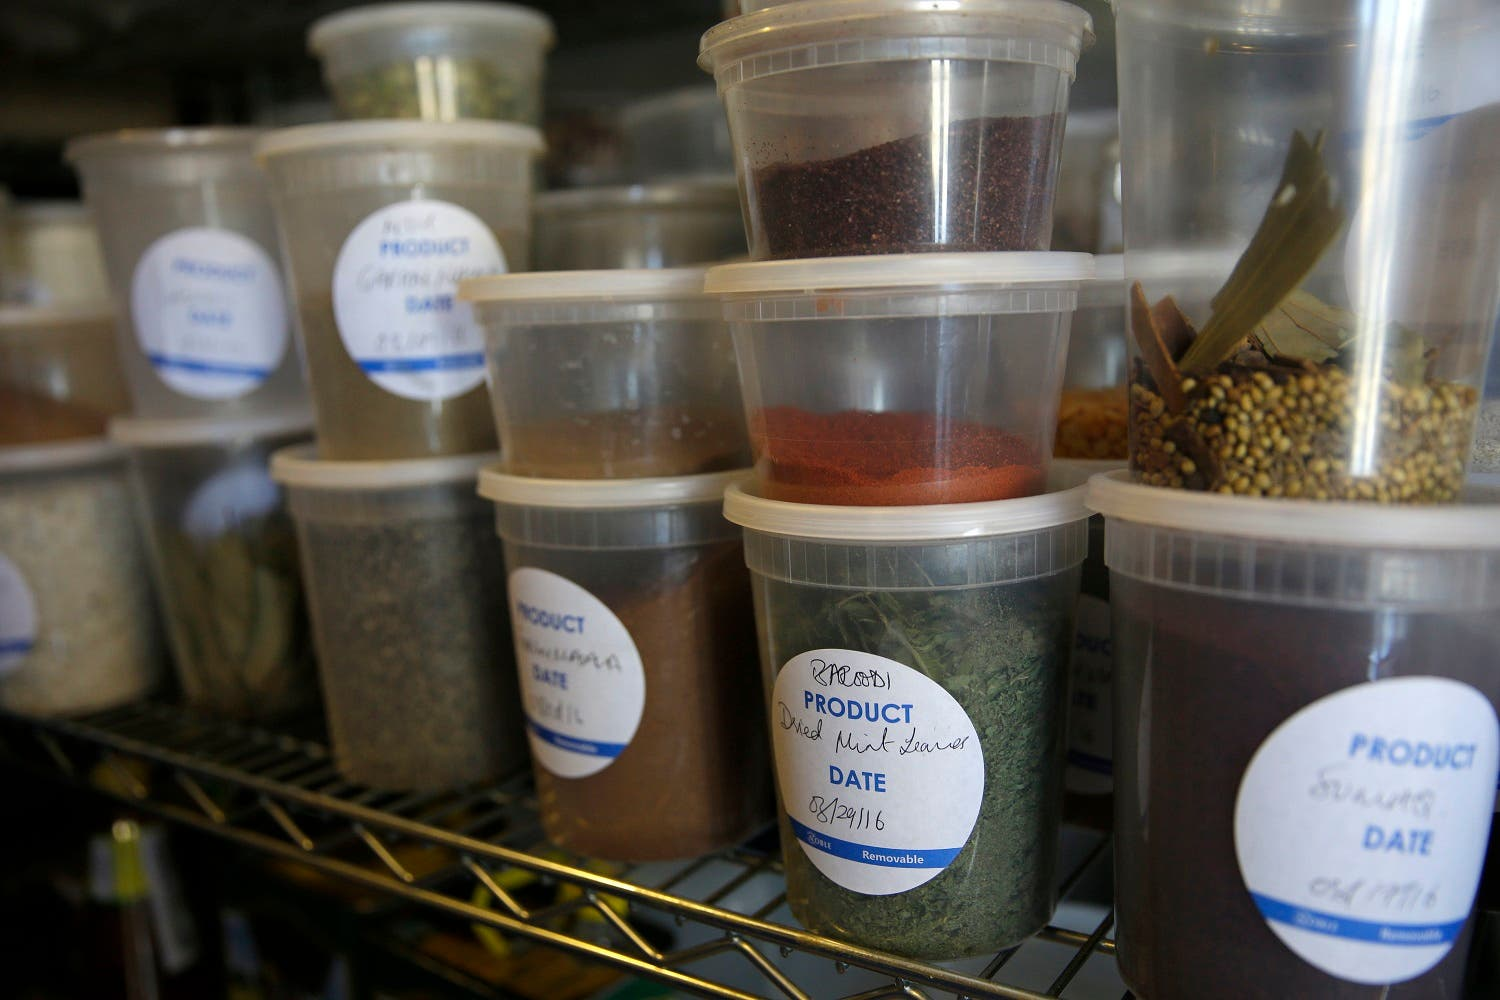 Spices from around world are stocked in the Eat Offbeat pantry in New York, Tuesday, March 29, 2016. A food delivery service is offering New Yorkers the chance to try some food cooked by some unusual chefs. All seven employees at Eat Offbeat are either refugees or asylum-seekers who fled their home countries. They're cooking foods from those places, including Iraq and Nepal. (AP)